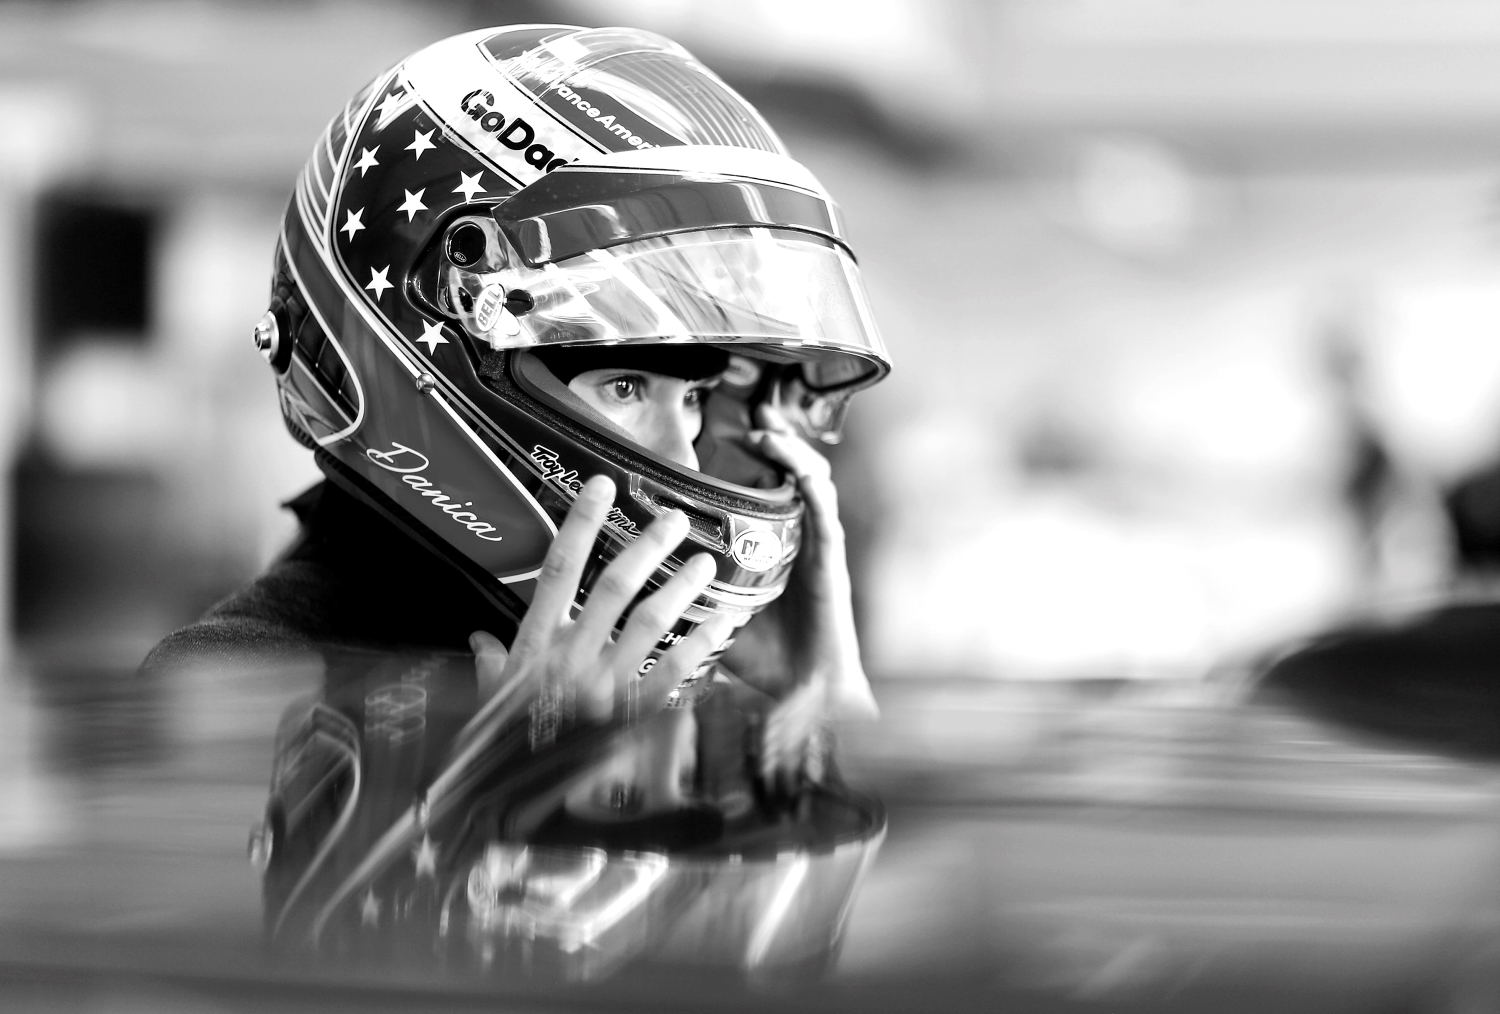 Danica Patrick adjusts her helmet during practice for the Indianapolis 500.